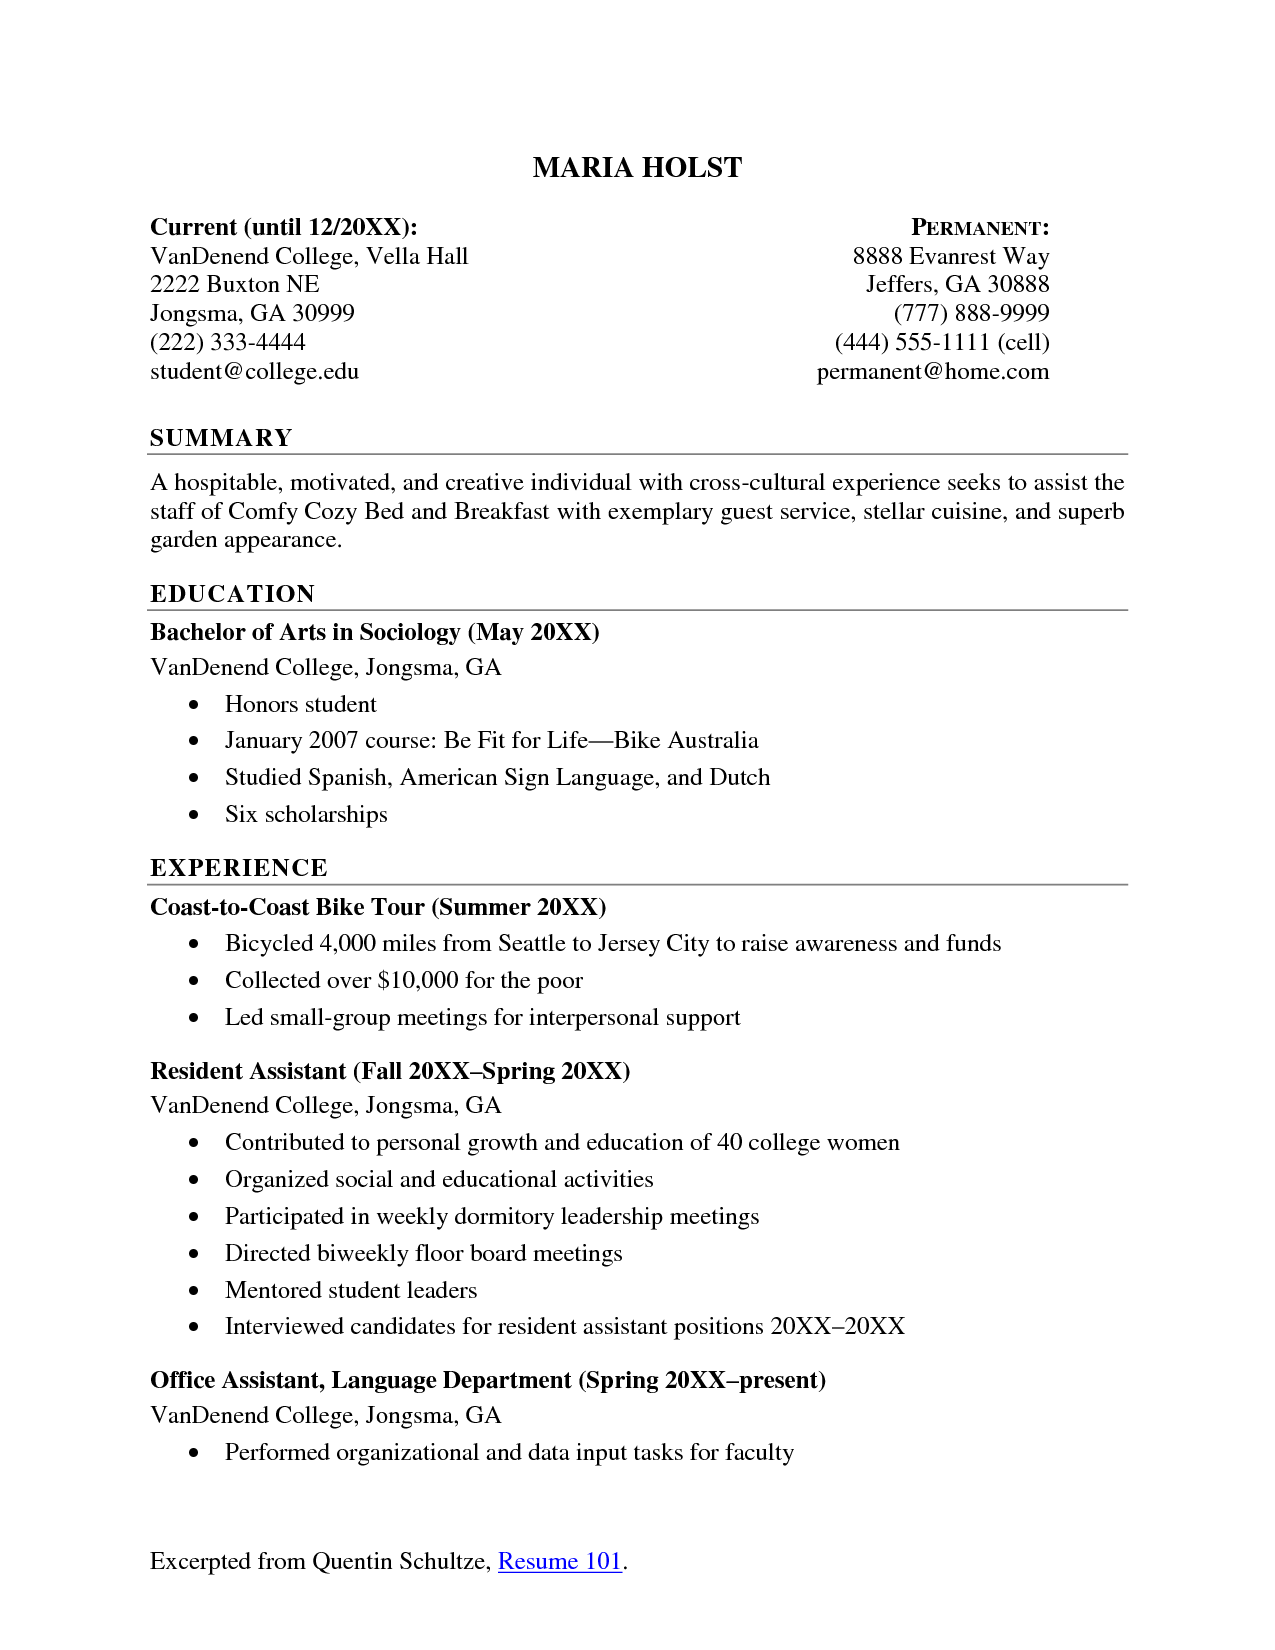 Sample Resume For College Student Supermamanscom Http Www